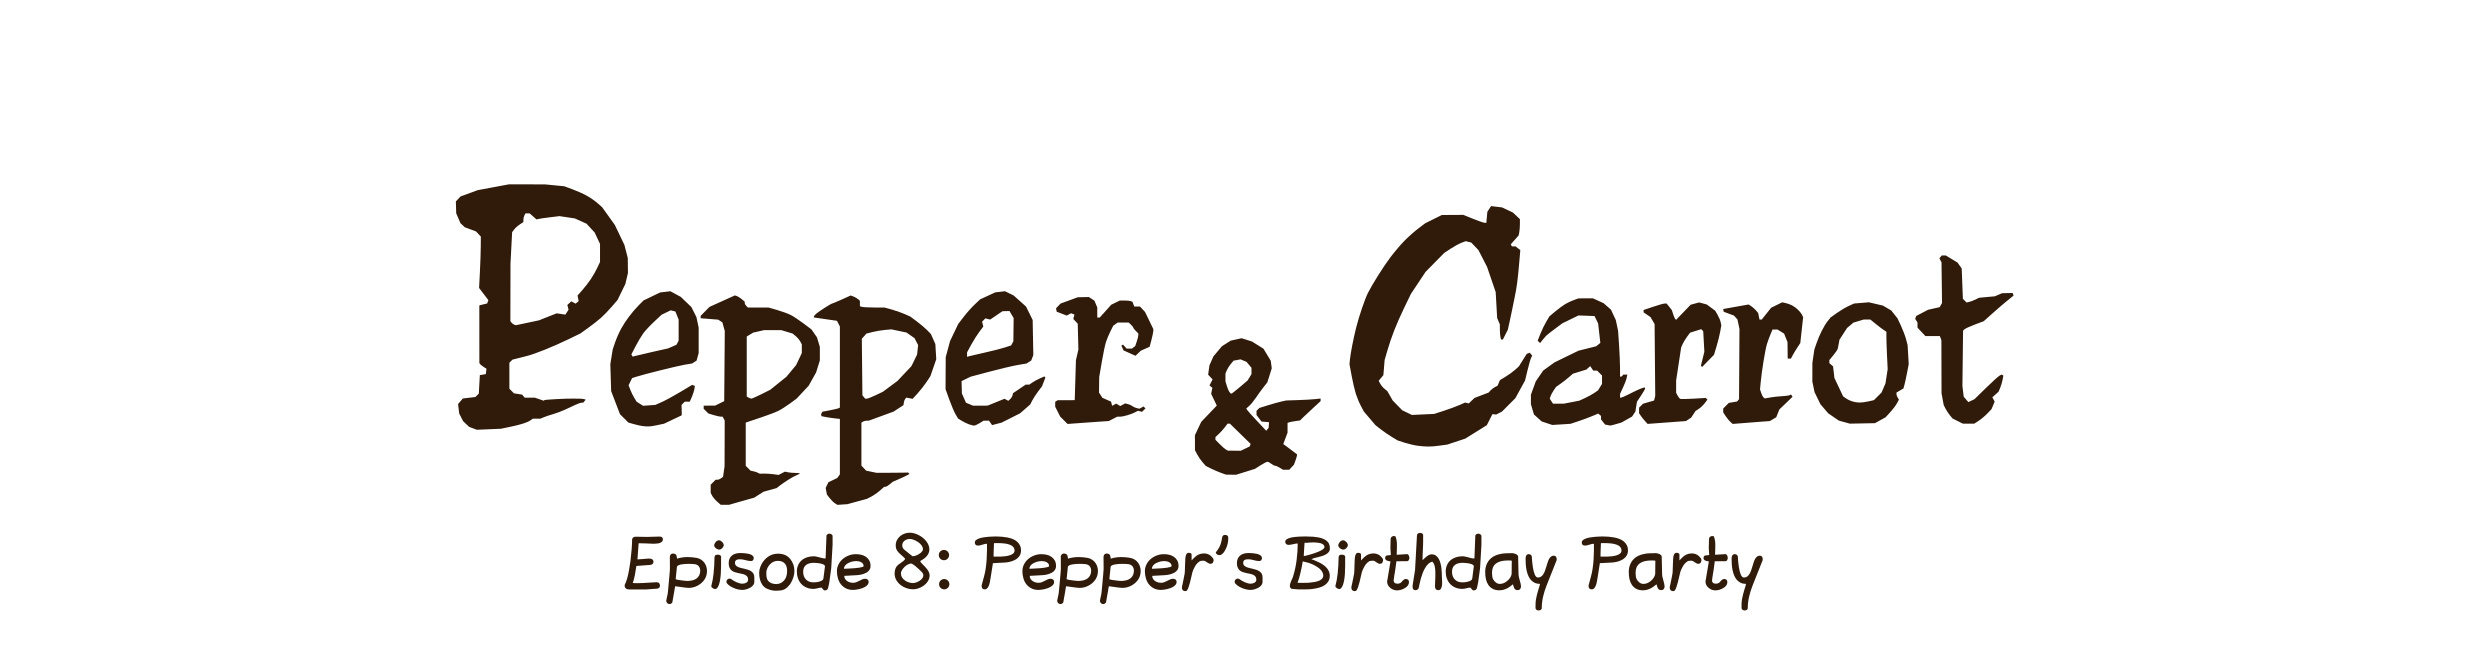 Episode 8: Pepper's Birthday Party